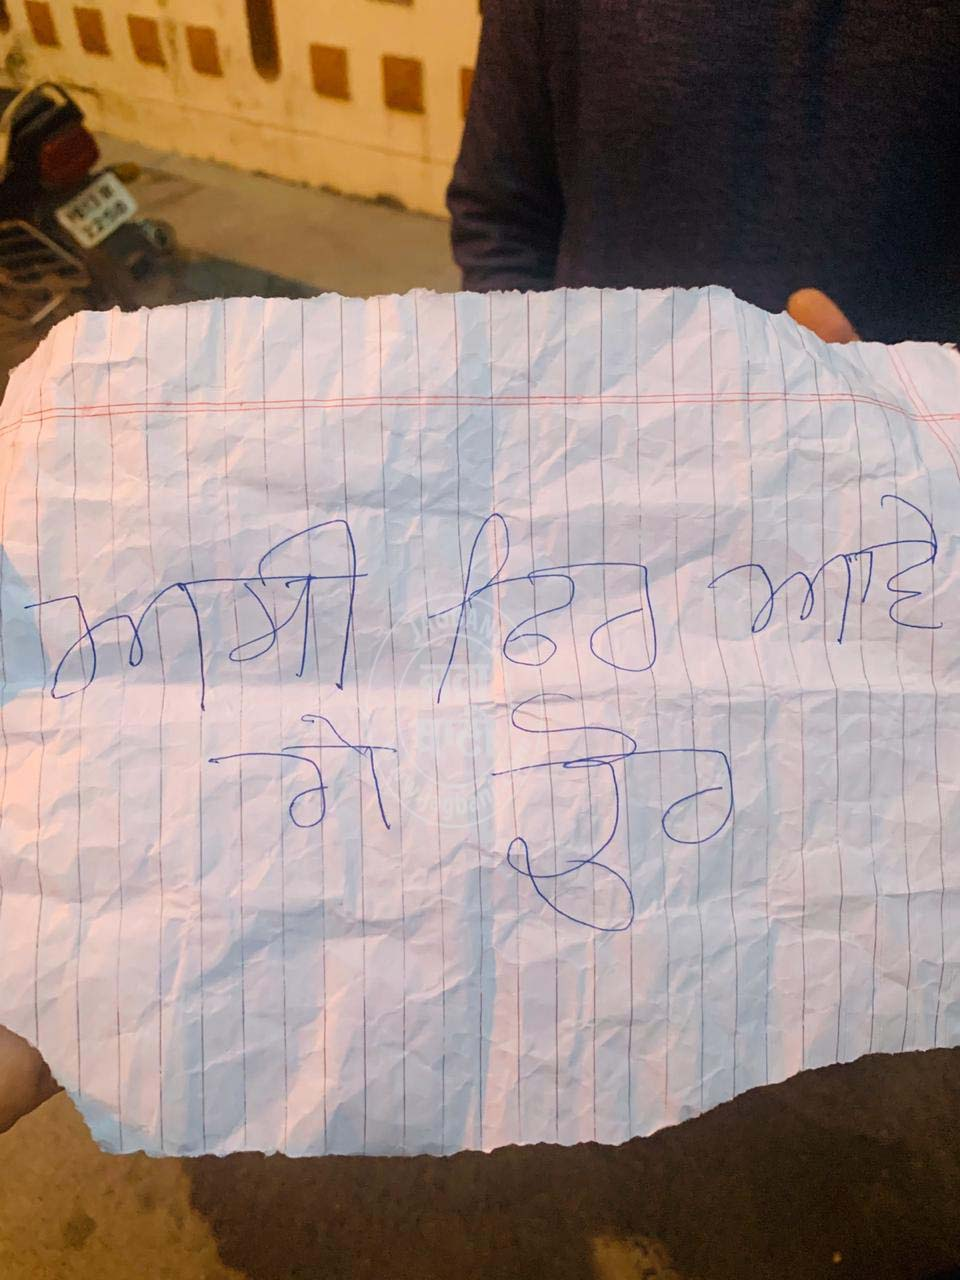 PunjabKesari, Thieves wrote a letter to warn for robbery